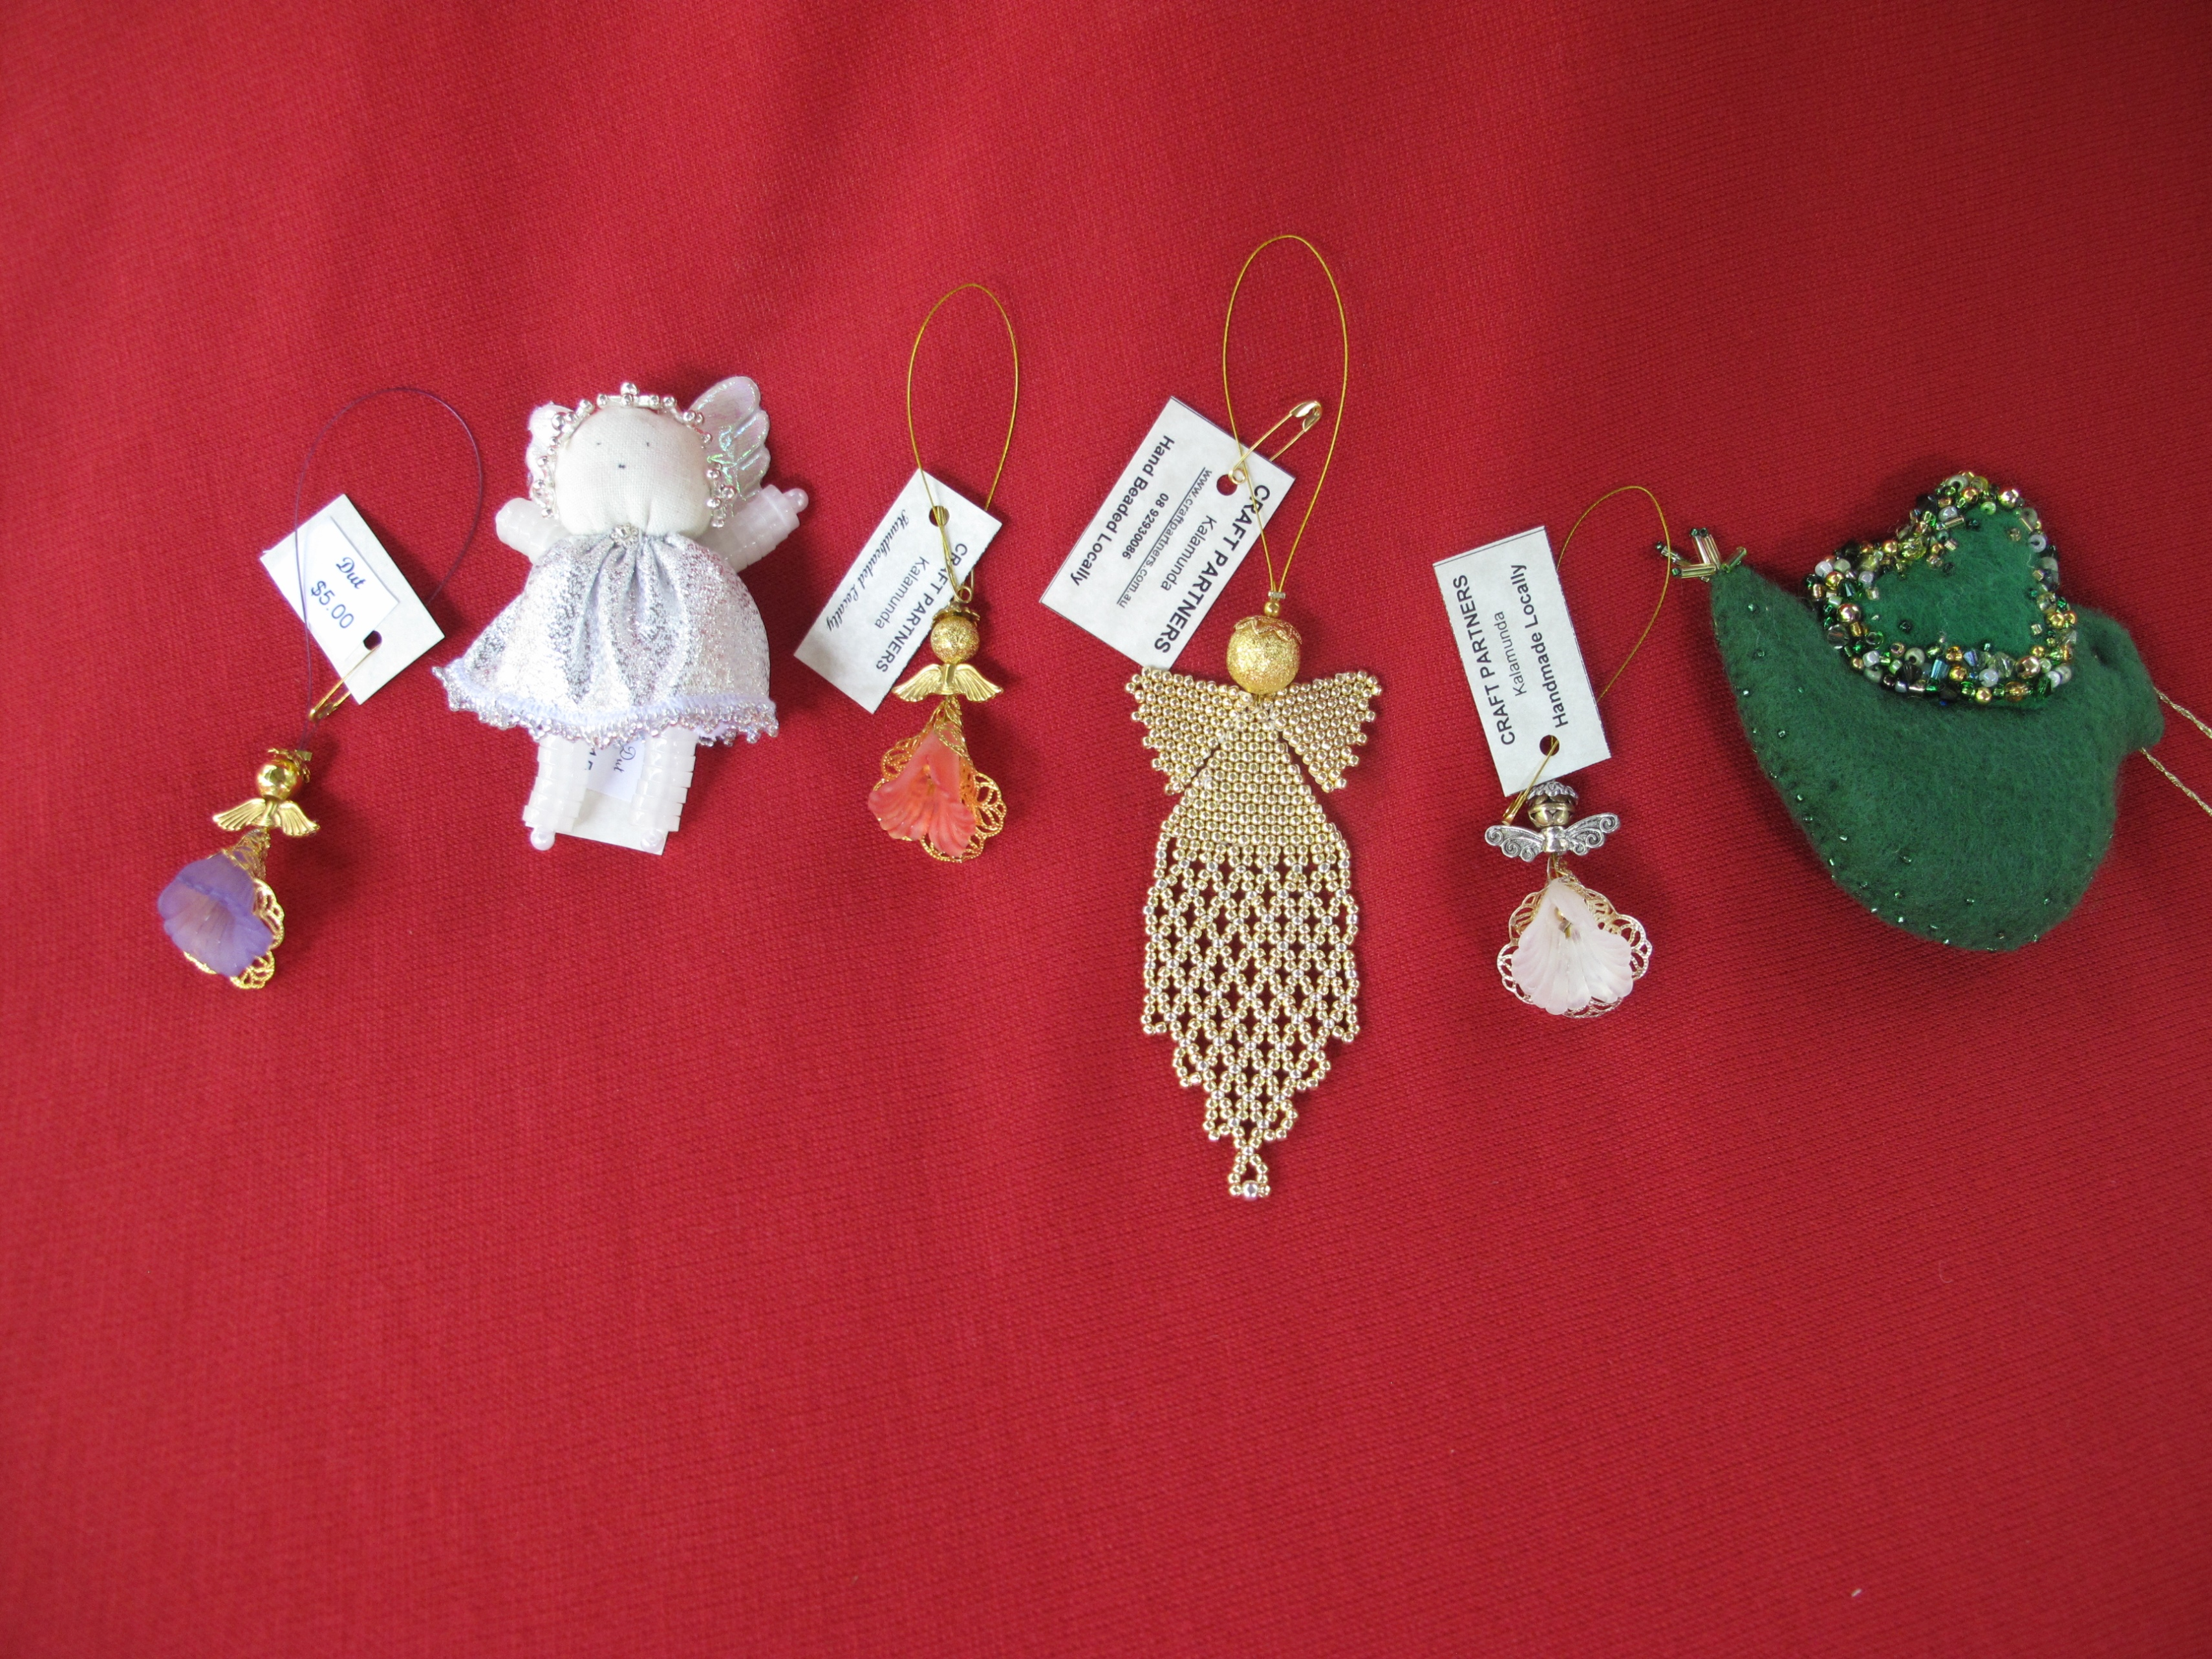 Christmas Tree Decorations - various